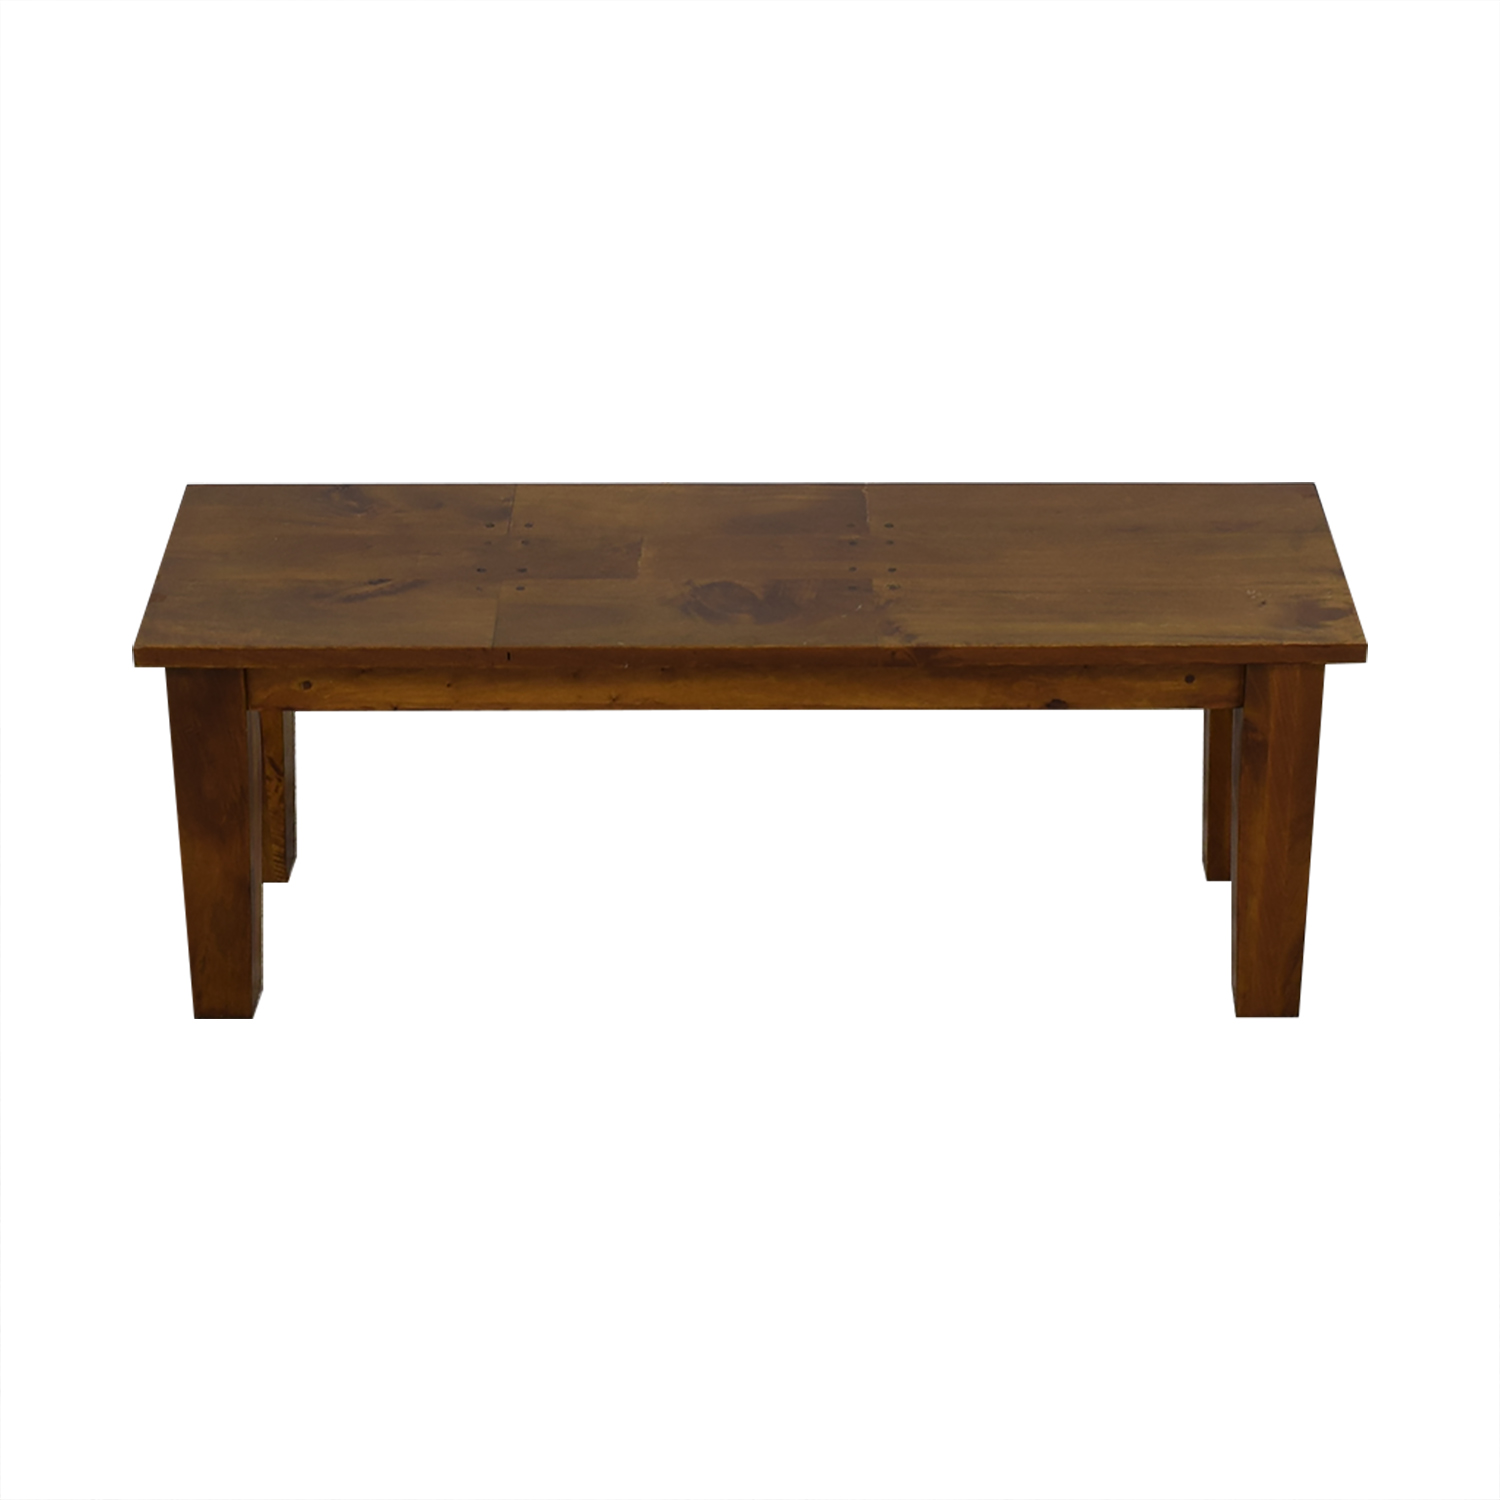 Crate & Barrel Basque Honey Dining Bench / Chairs